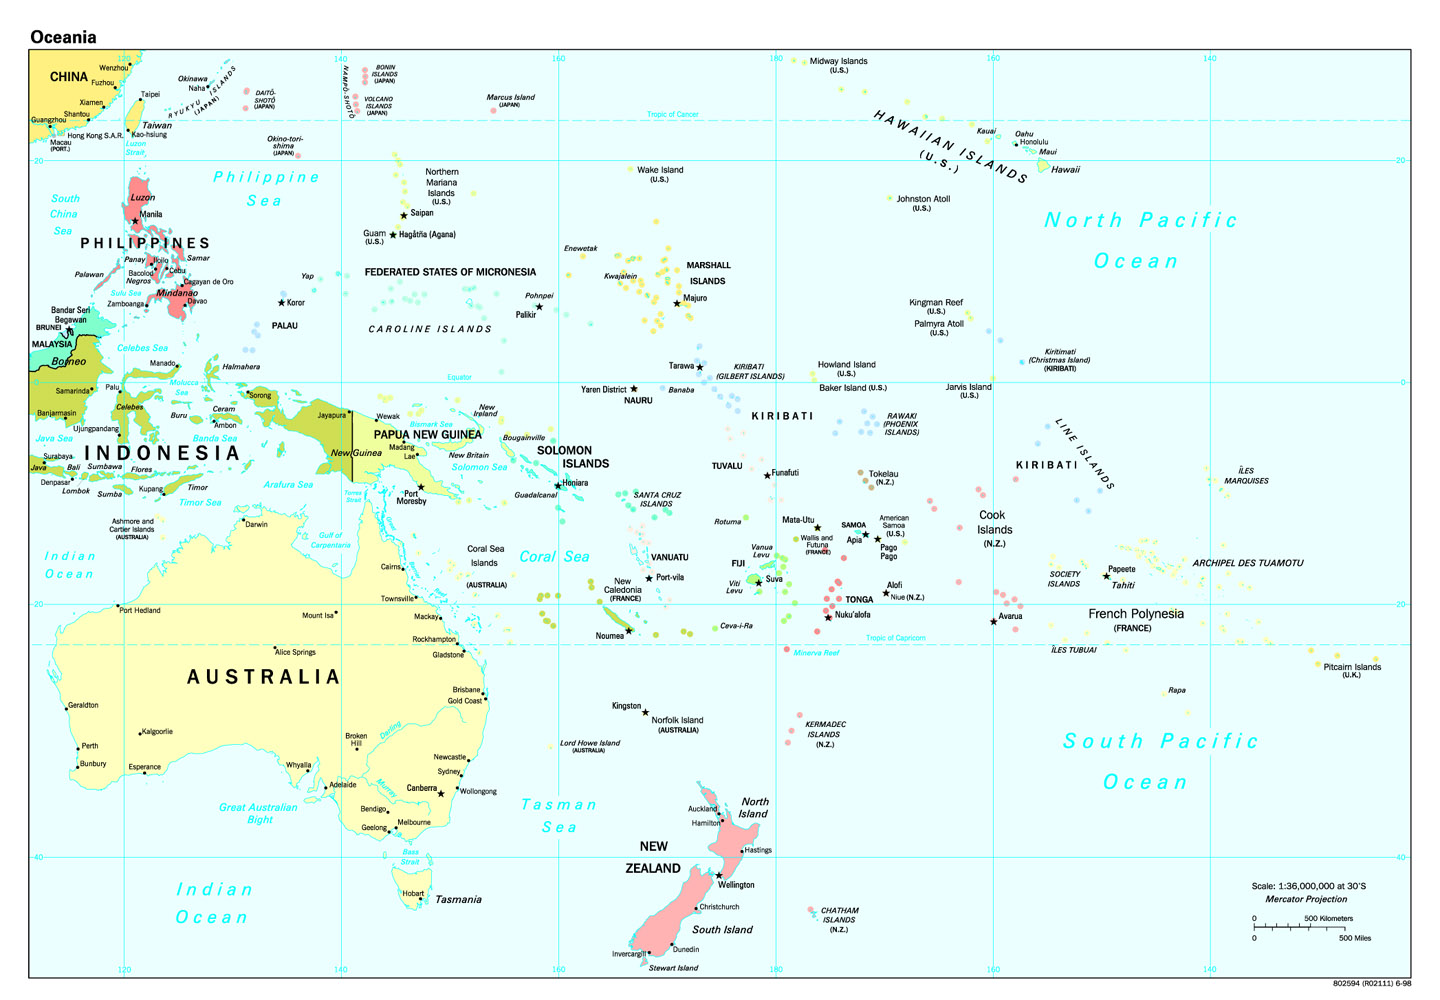 map of southern pacific ocean South Pacific Ocean Political Map Mapsof Net map of southern pacific ocean